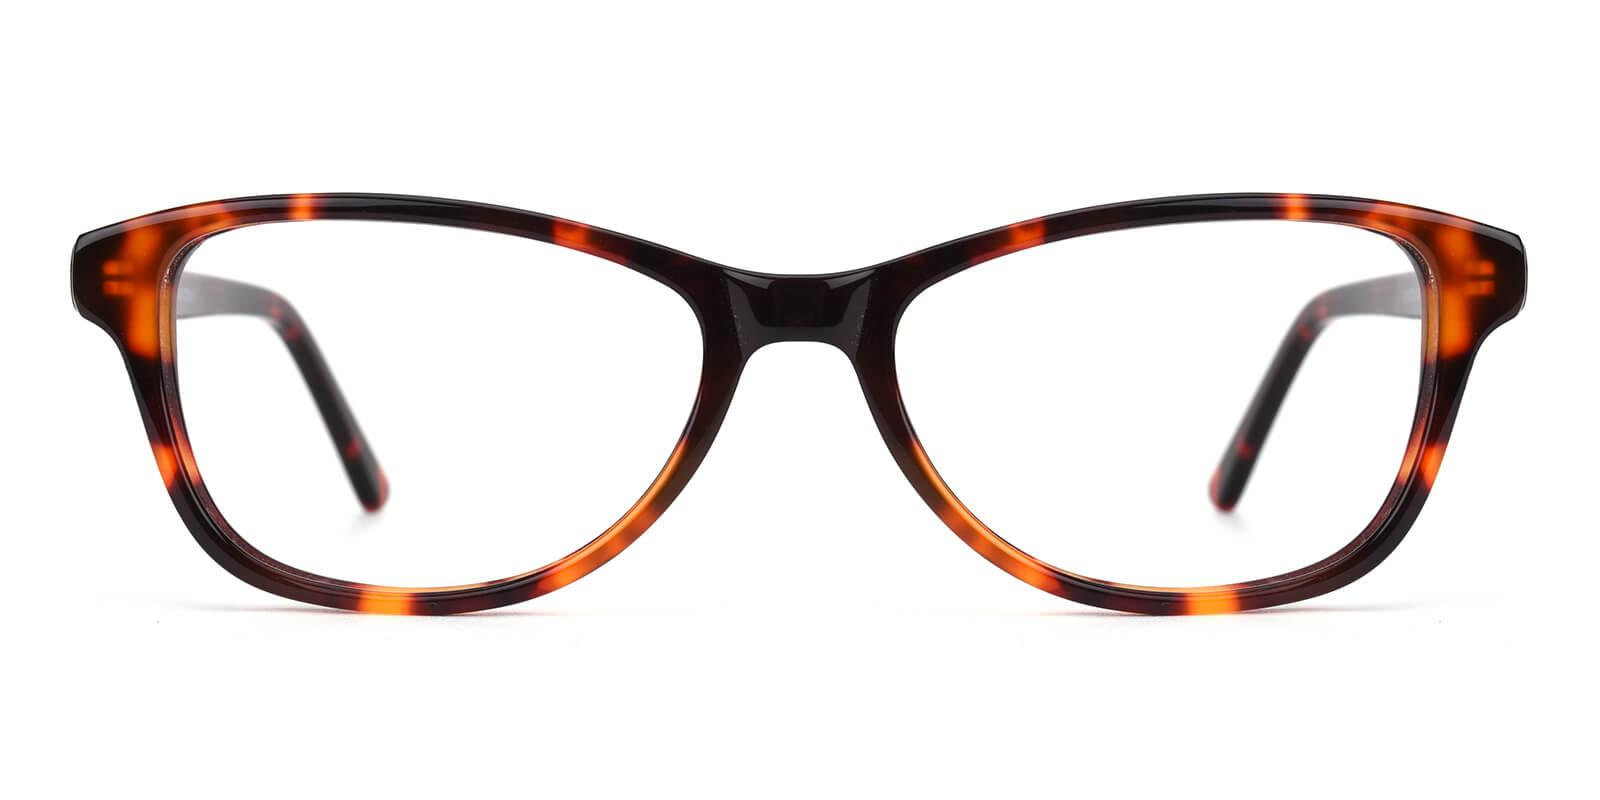 Marind-Tortoise-Cat-Acetate-Eyeglasses-additional2